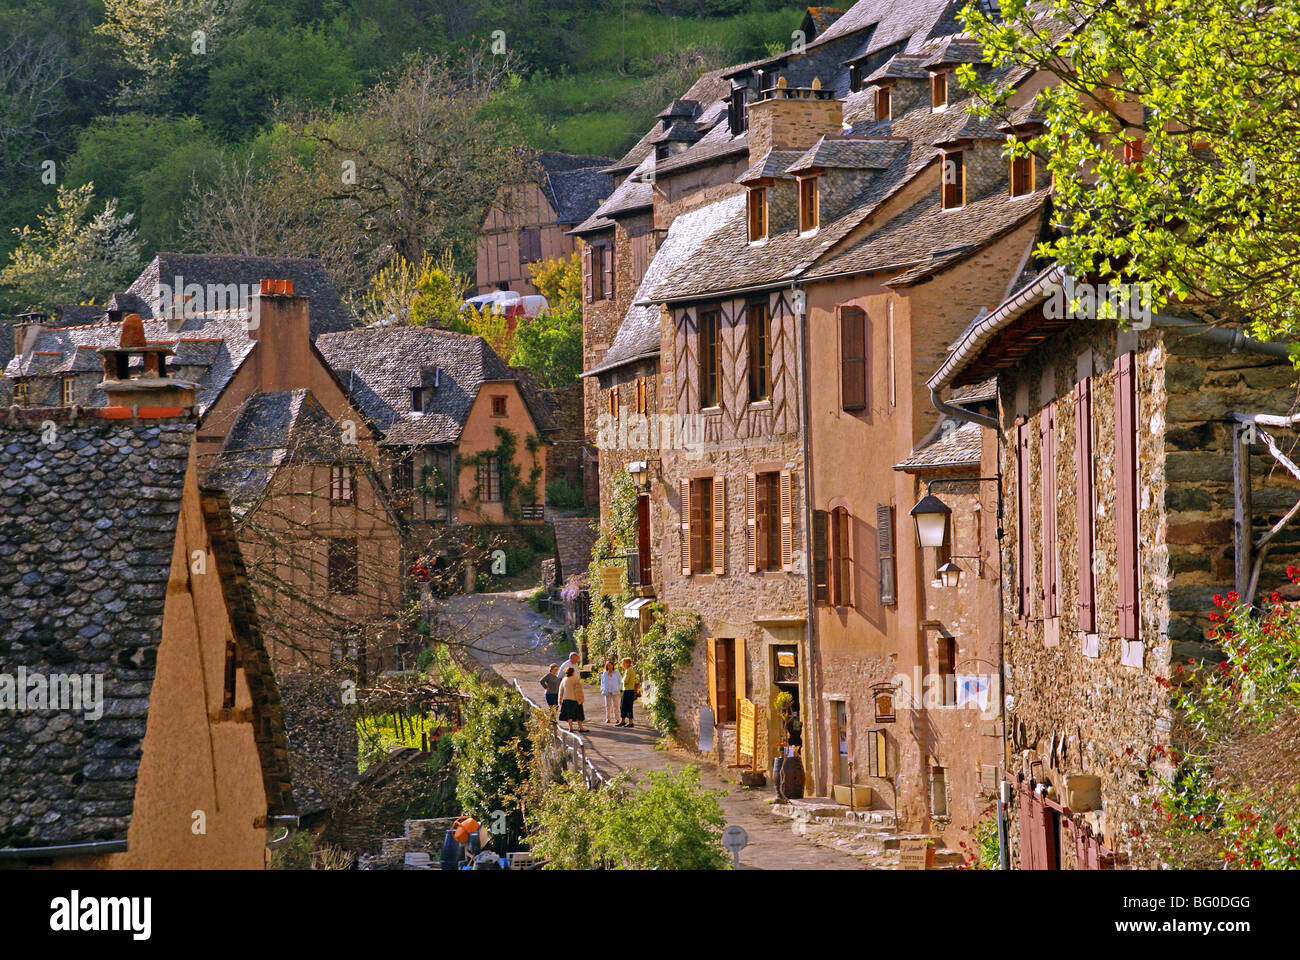 When the tourists have gone. The old pilgrimage town of Conques in France in the early evening. - Stock Image